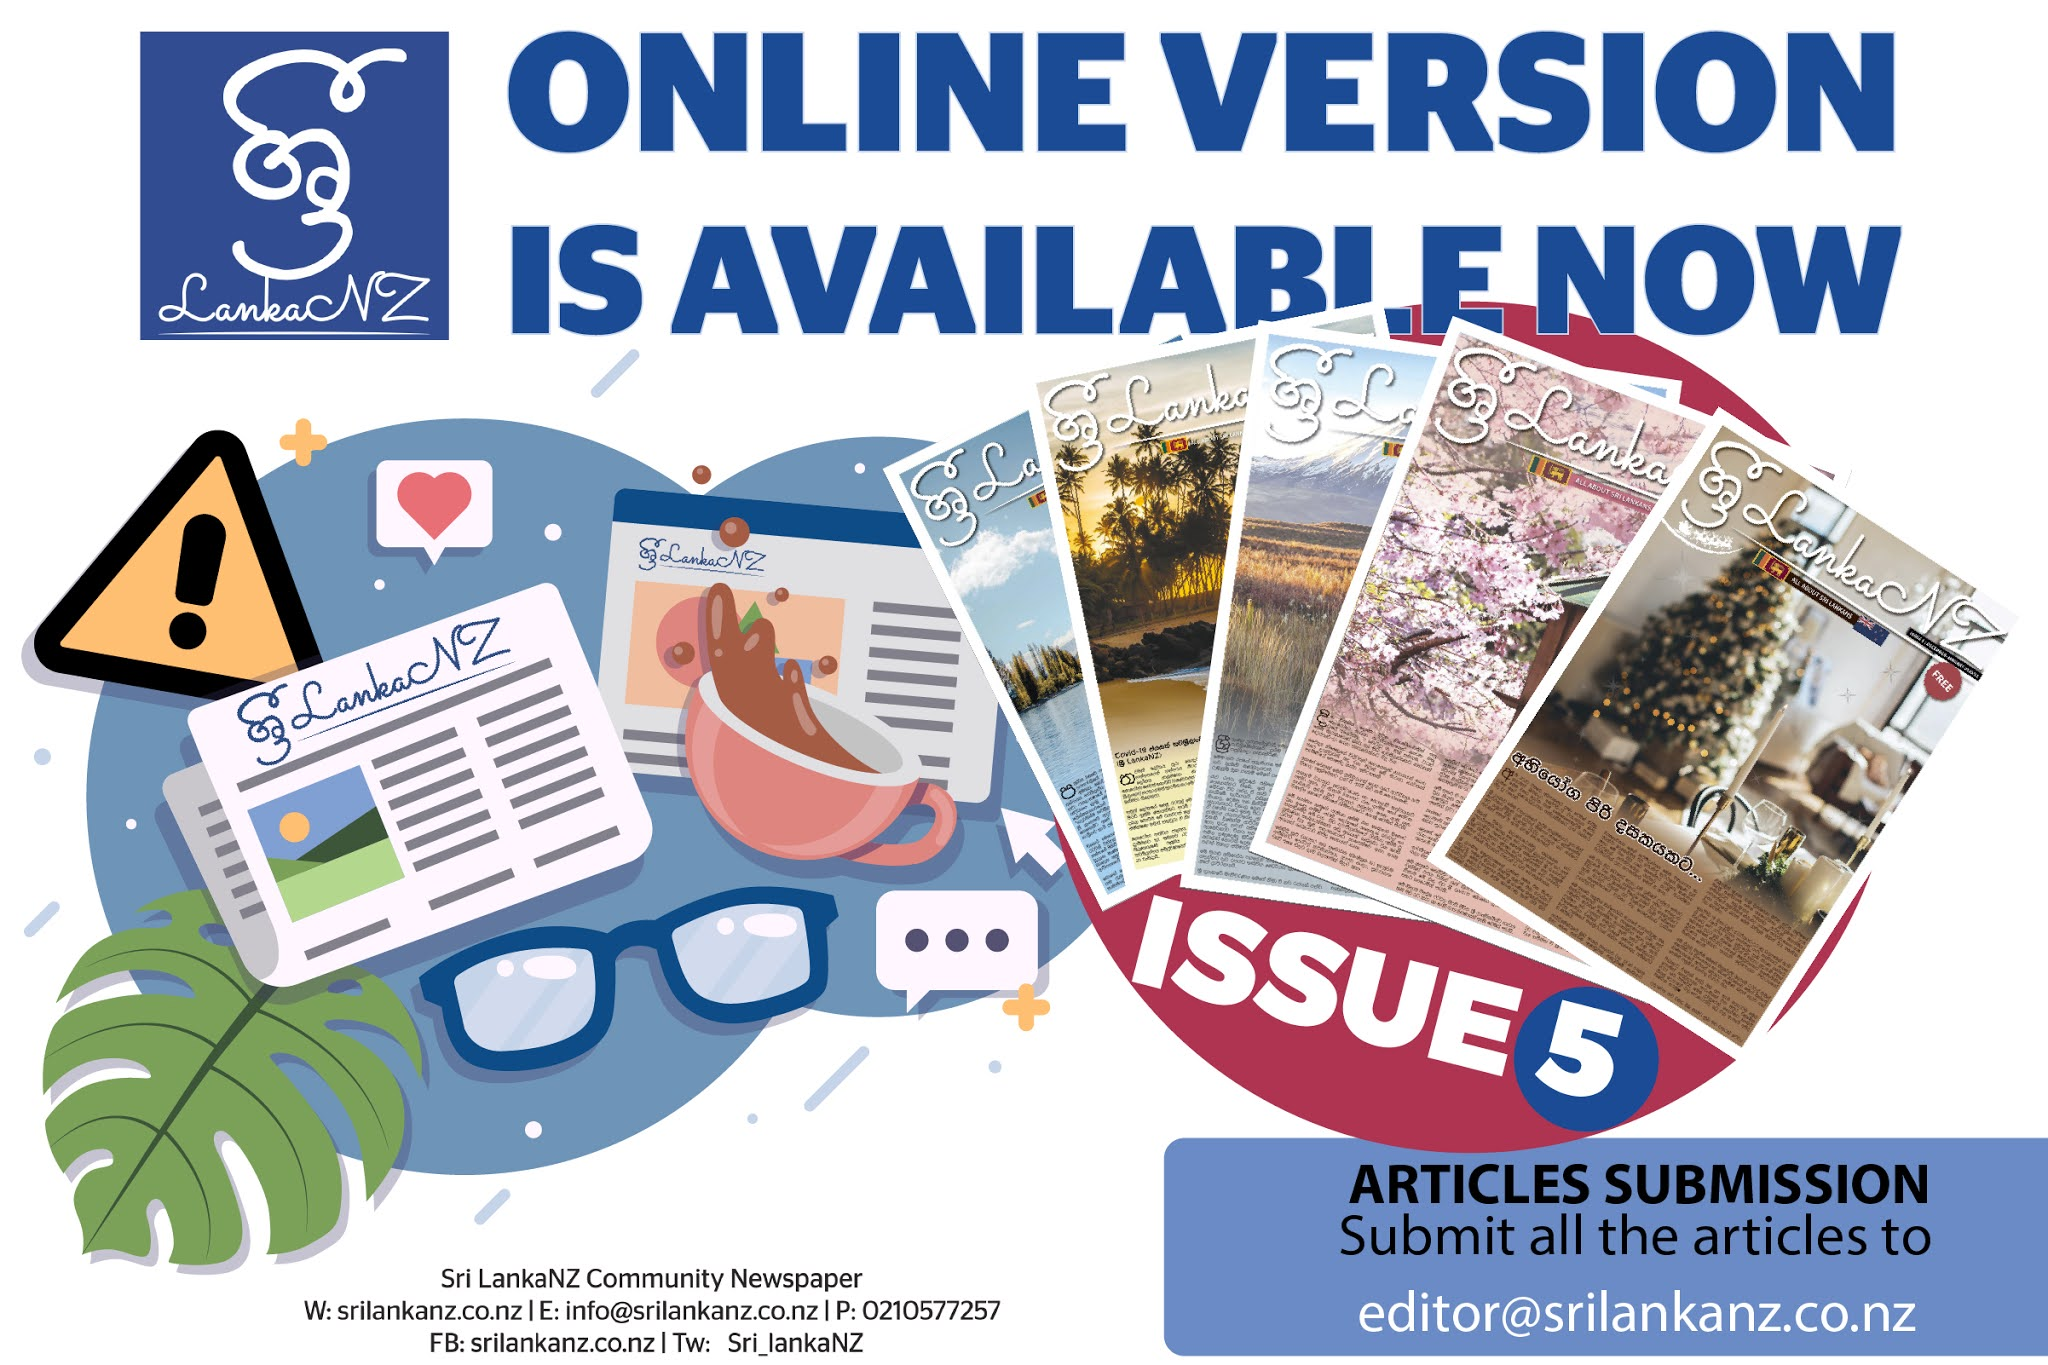 The SrilankaNZ Newspaper – The Issue 5 Online version is available now…